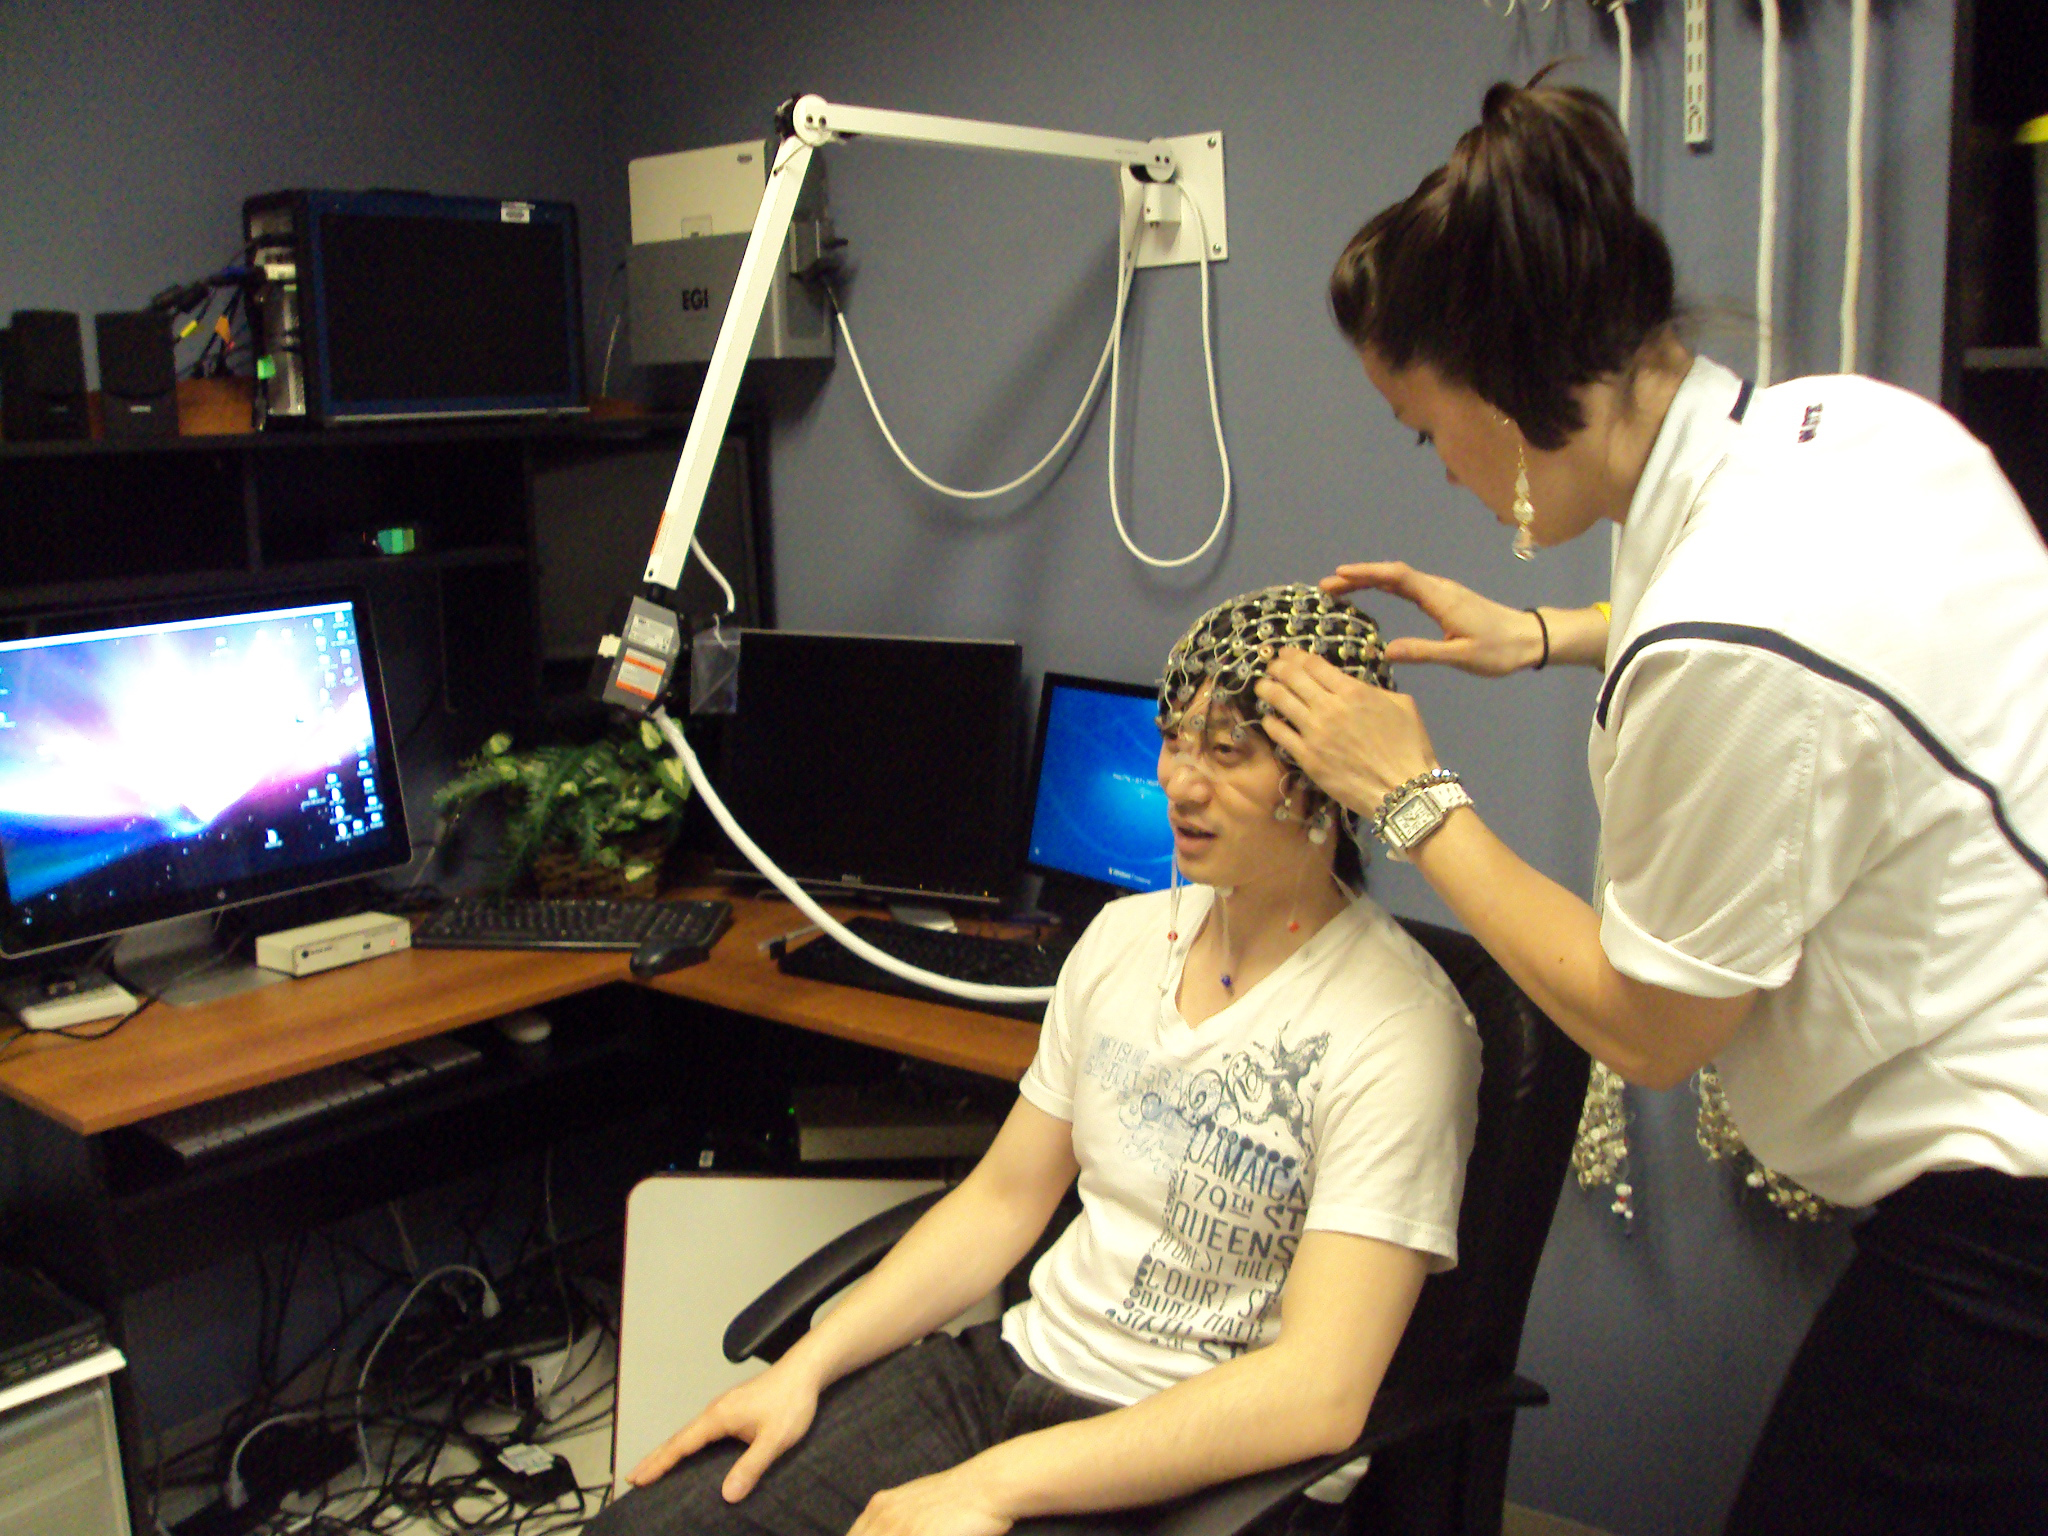 woman fitting EEG cap on volunteer